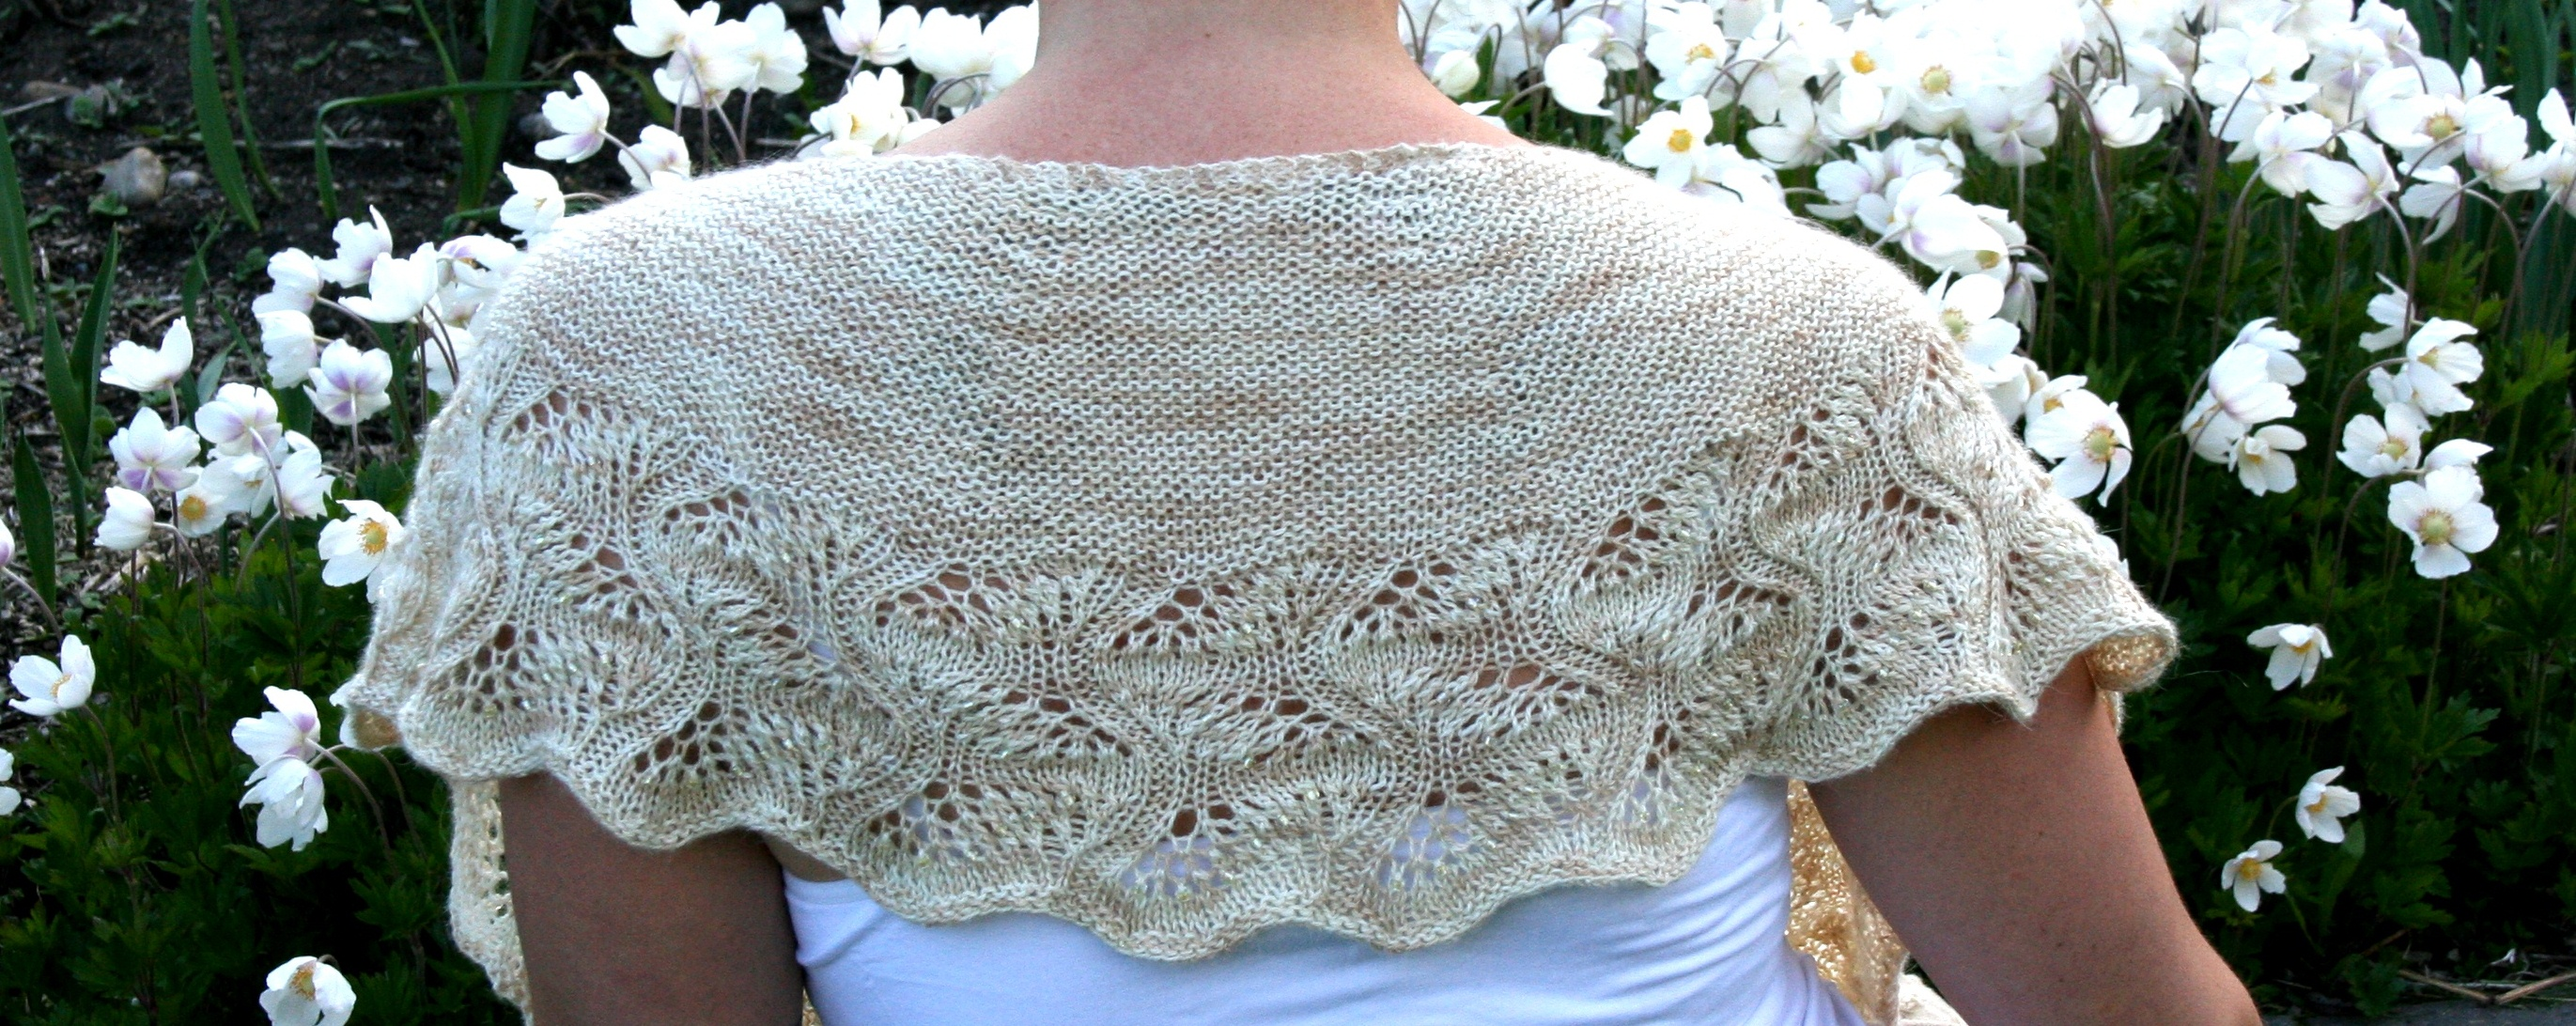 Knitted Lace Edging Patterns : Introducing Praline!   Kourtney Robinson   Dollybird Workshop